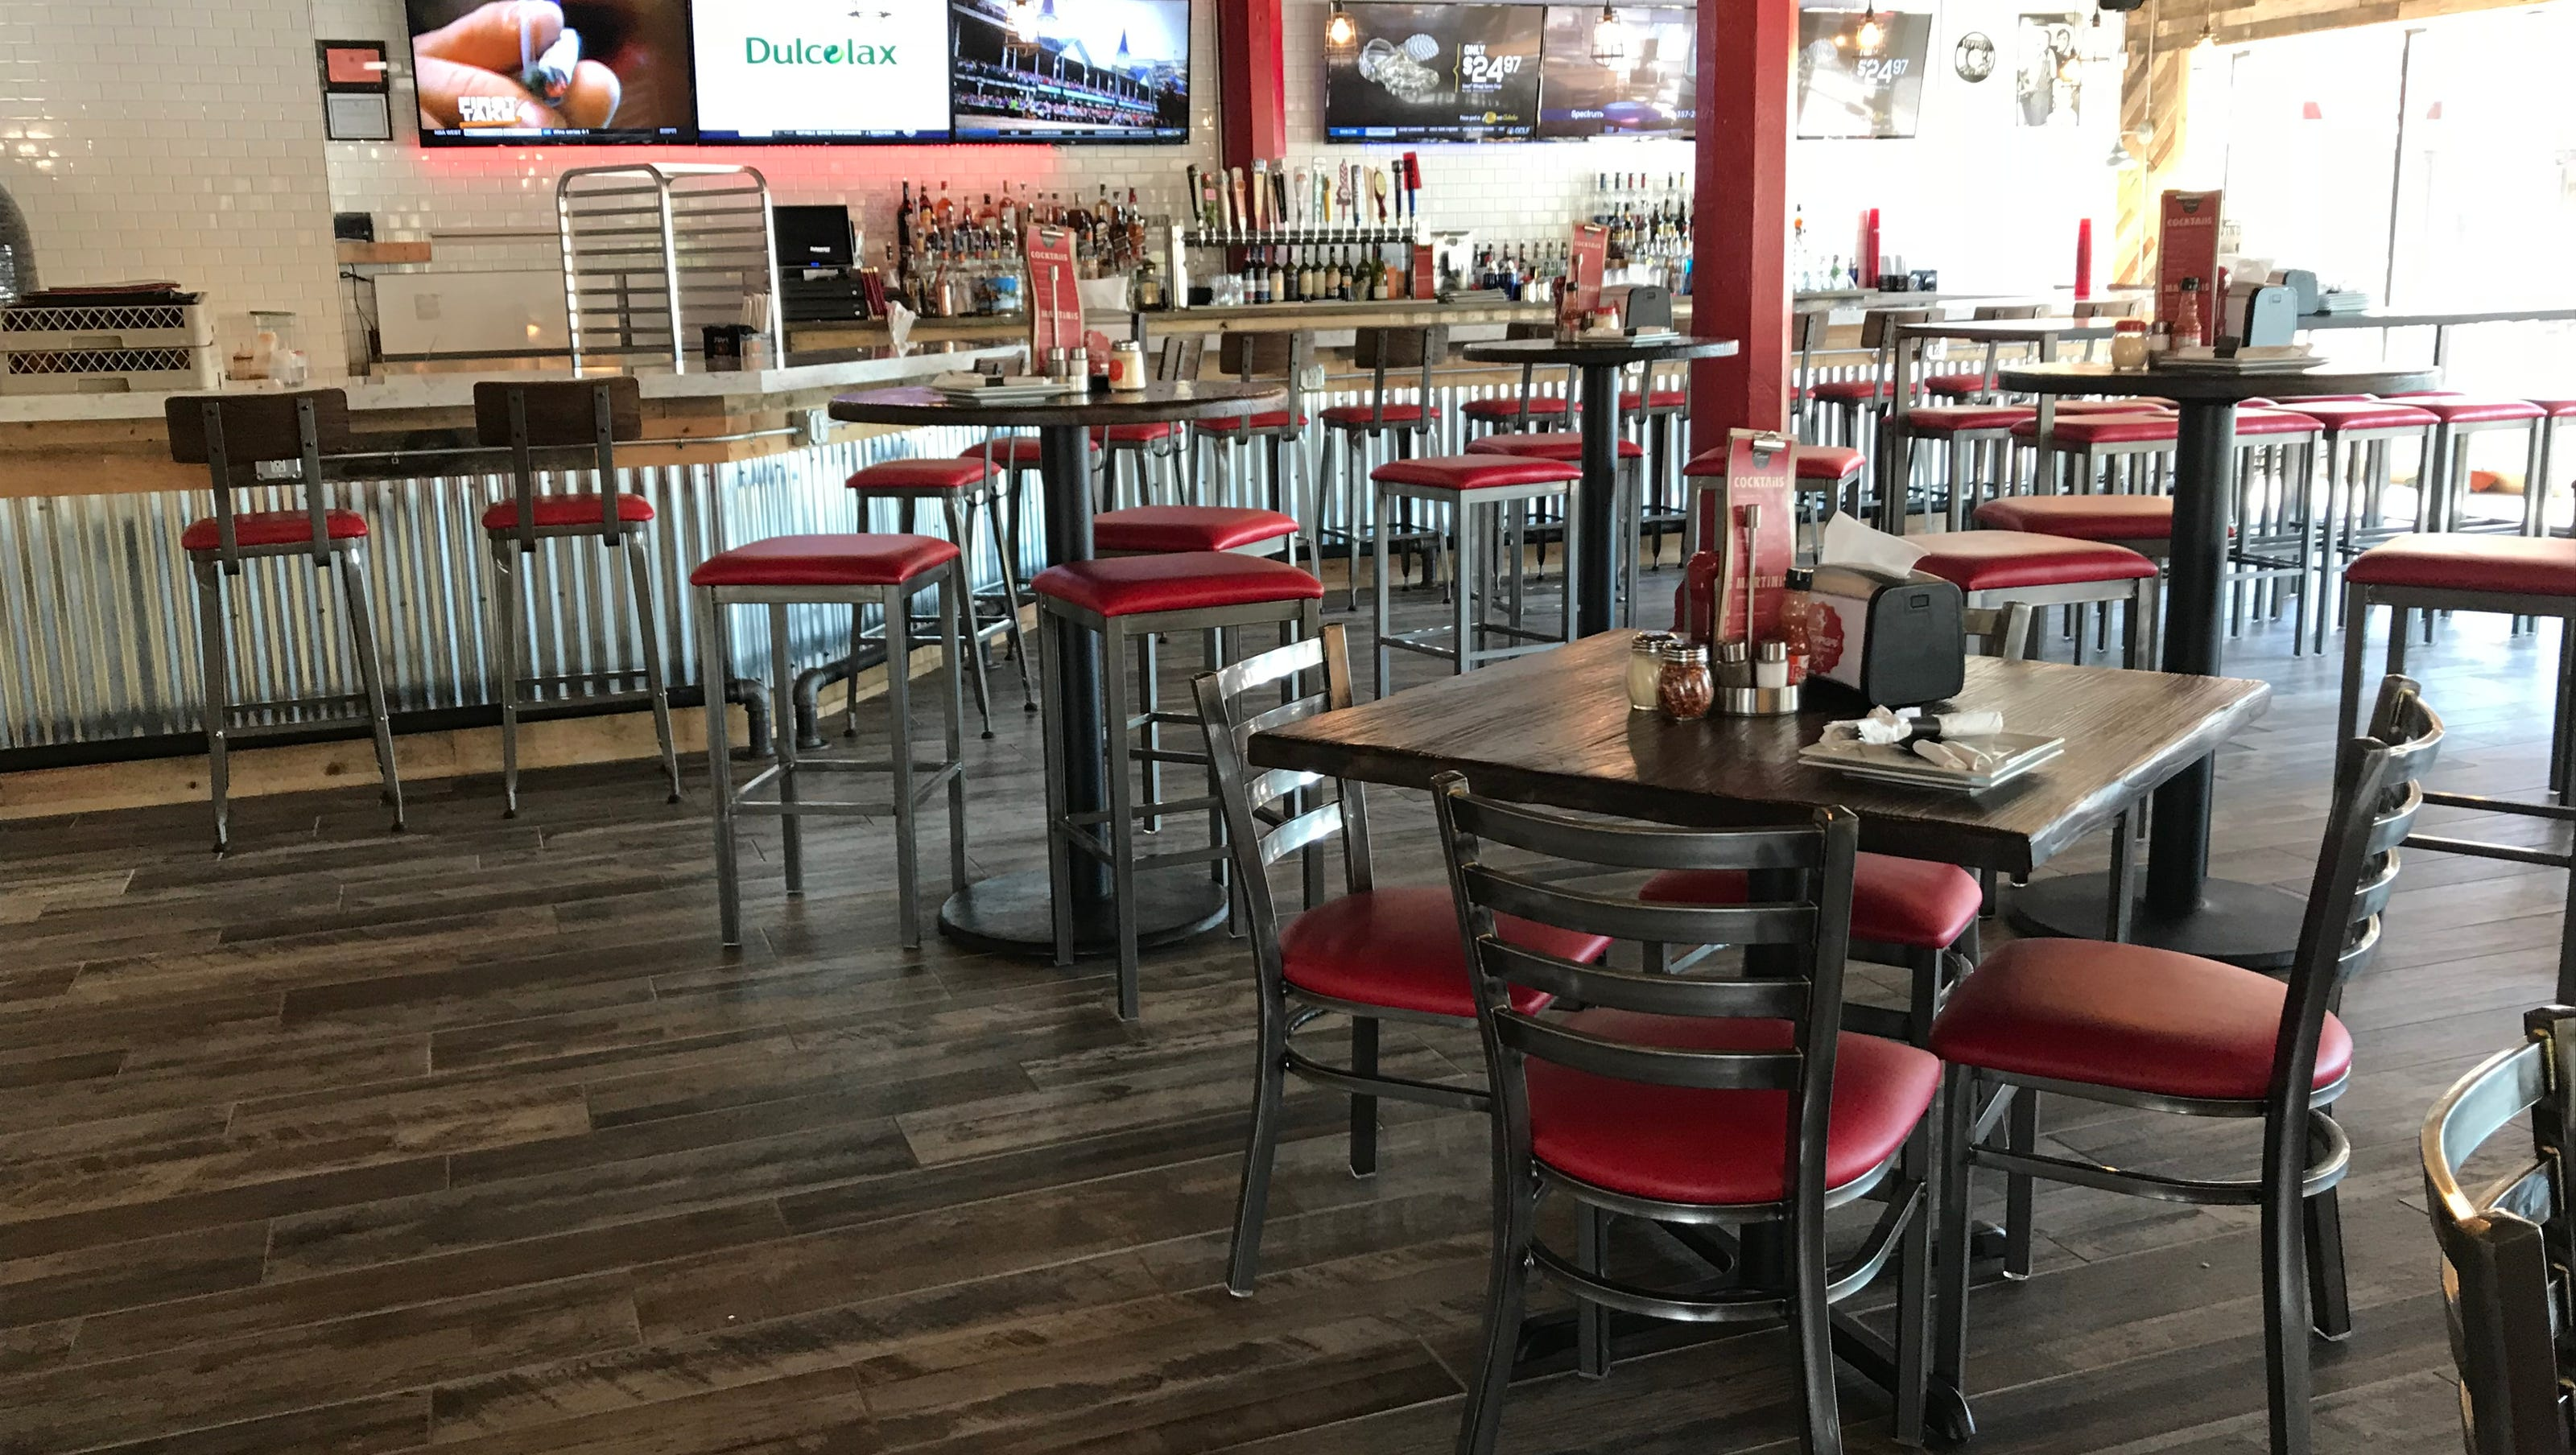 Monroe County Health Department warns of possible COVID exposures at ER pizza restaurant